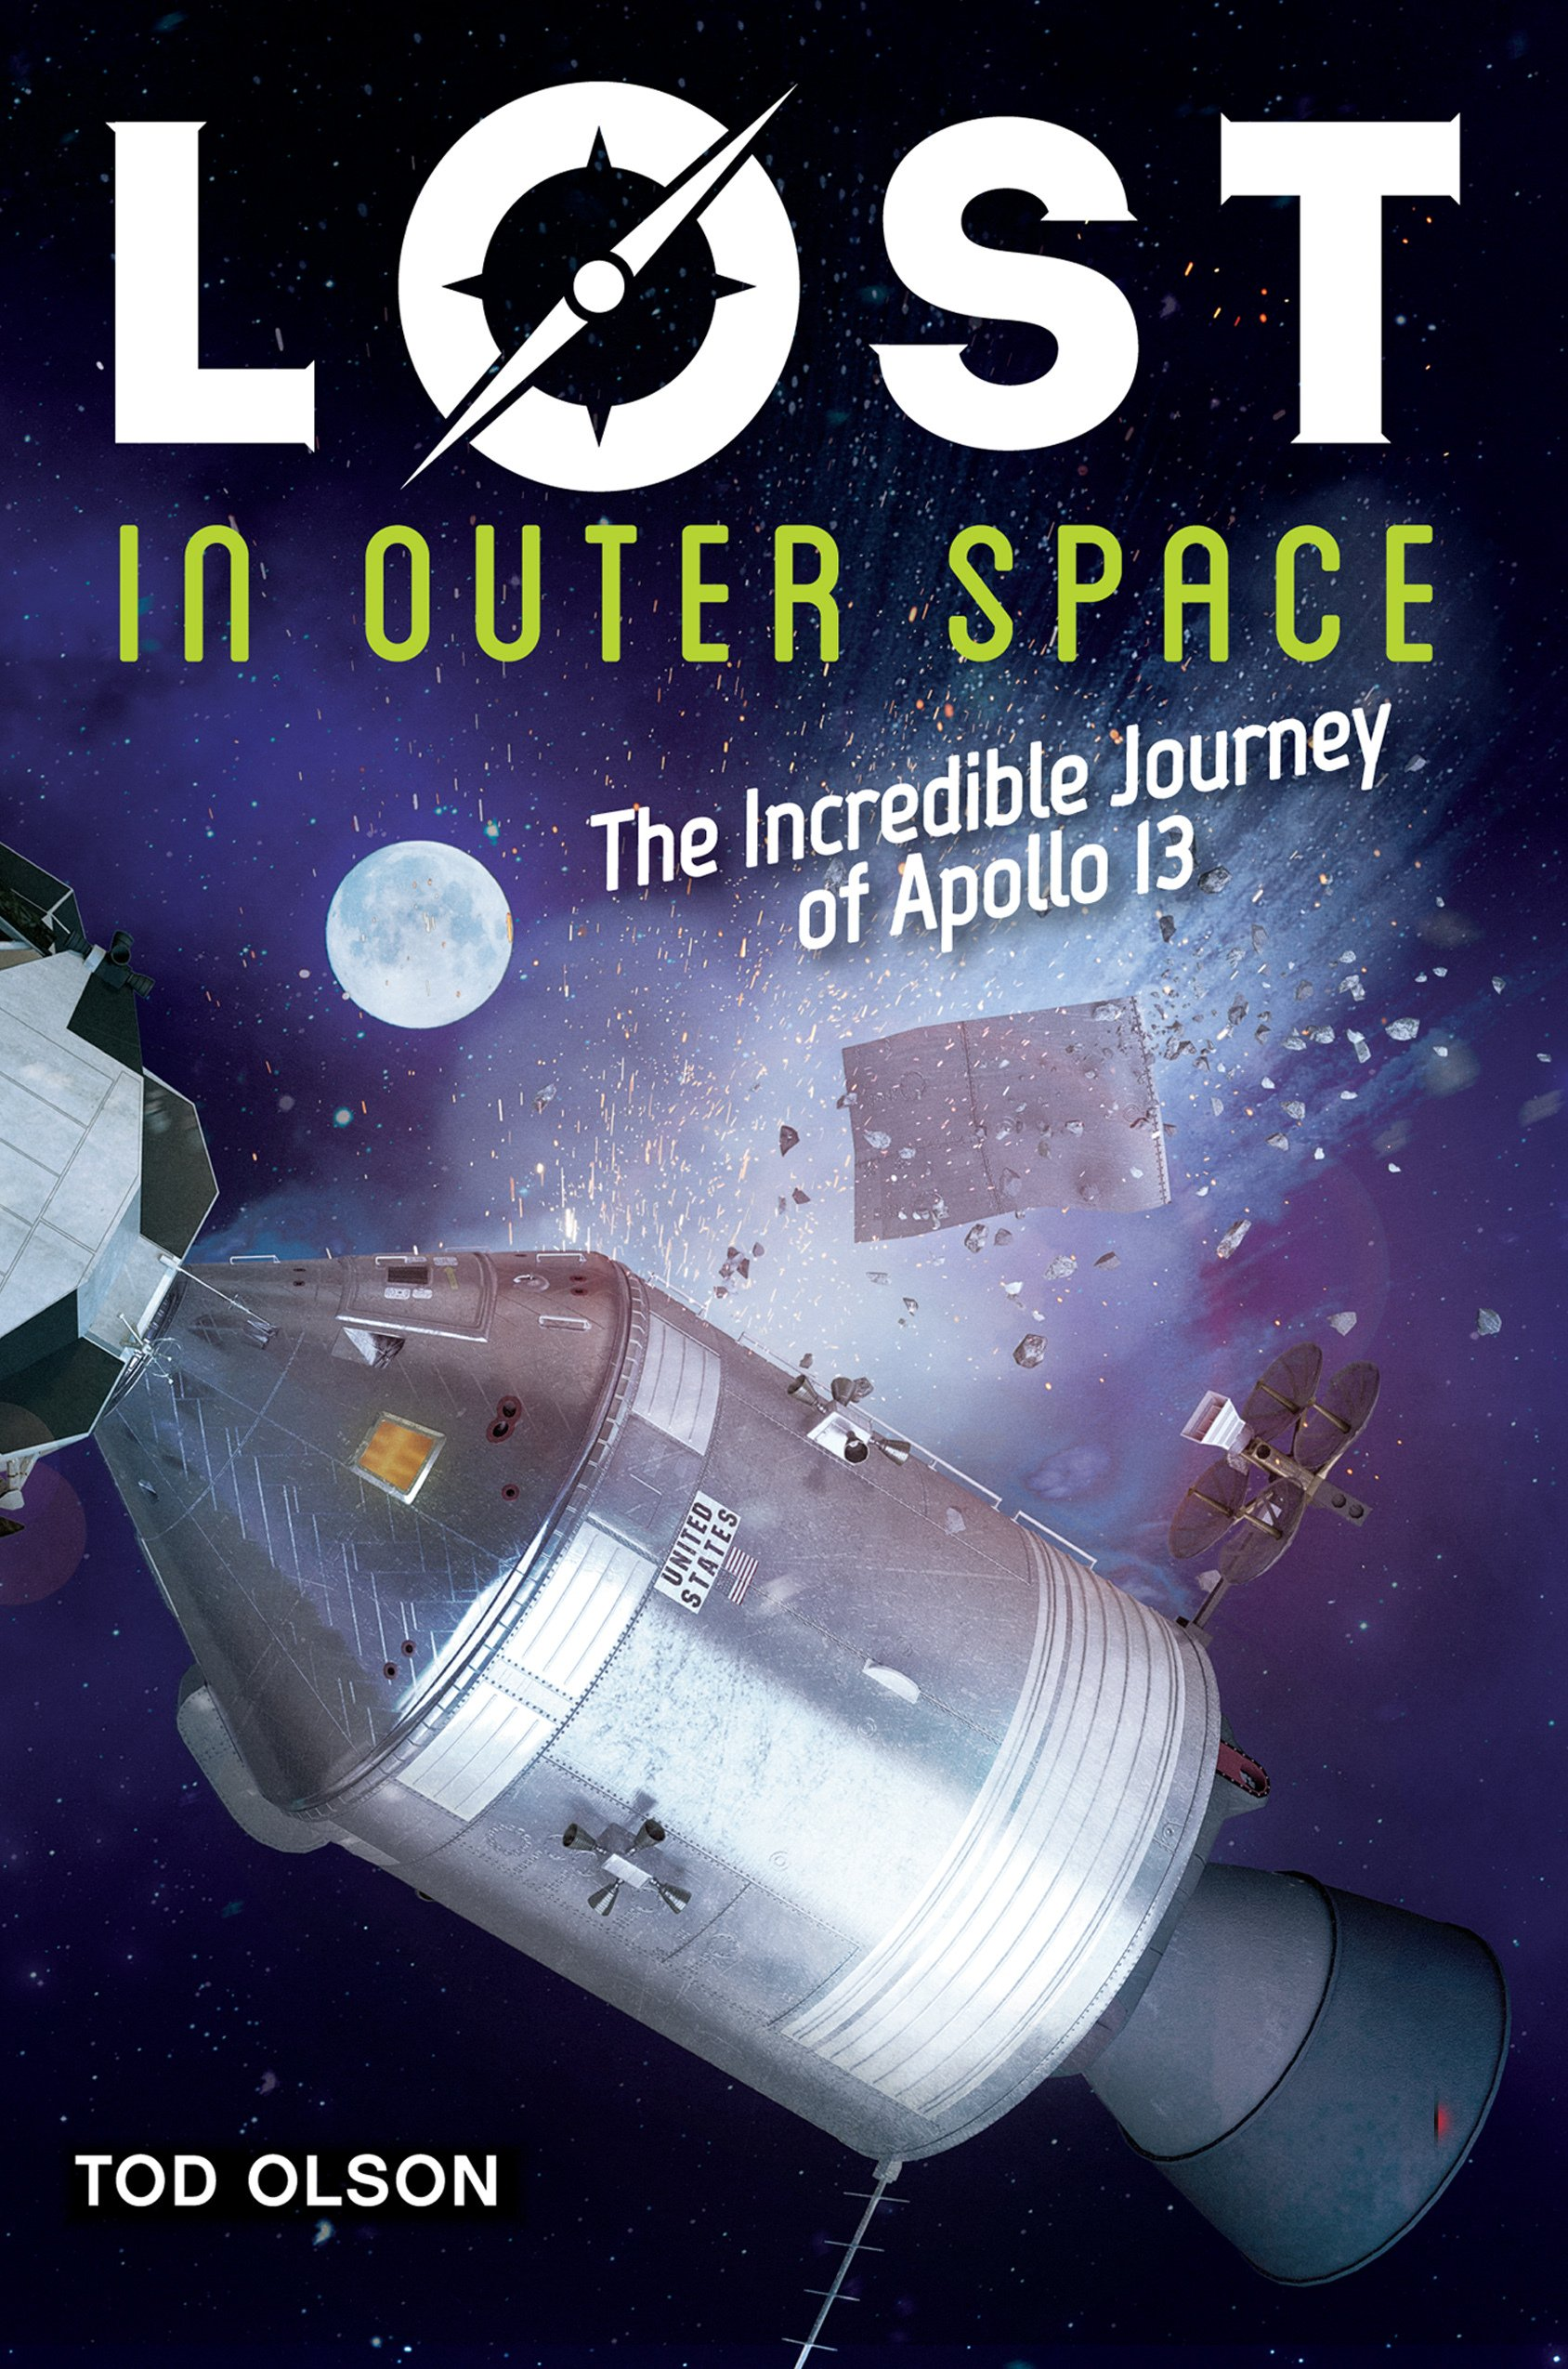 Download Lost in Outer Space (Lost #2): The Incredible Journey of Apollo 13 PDF